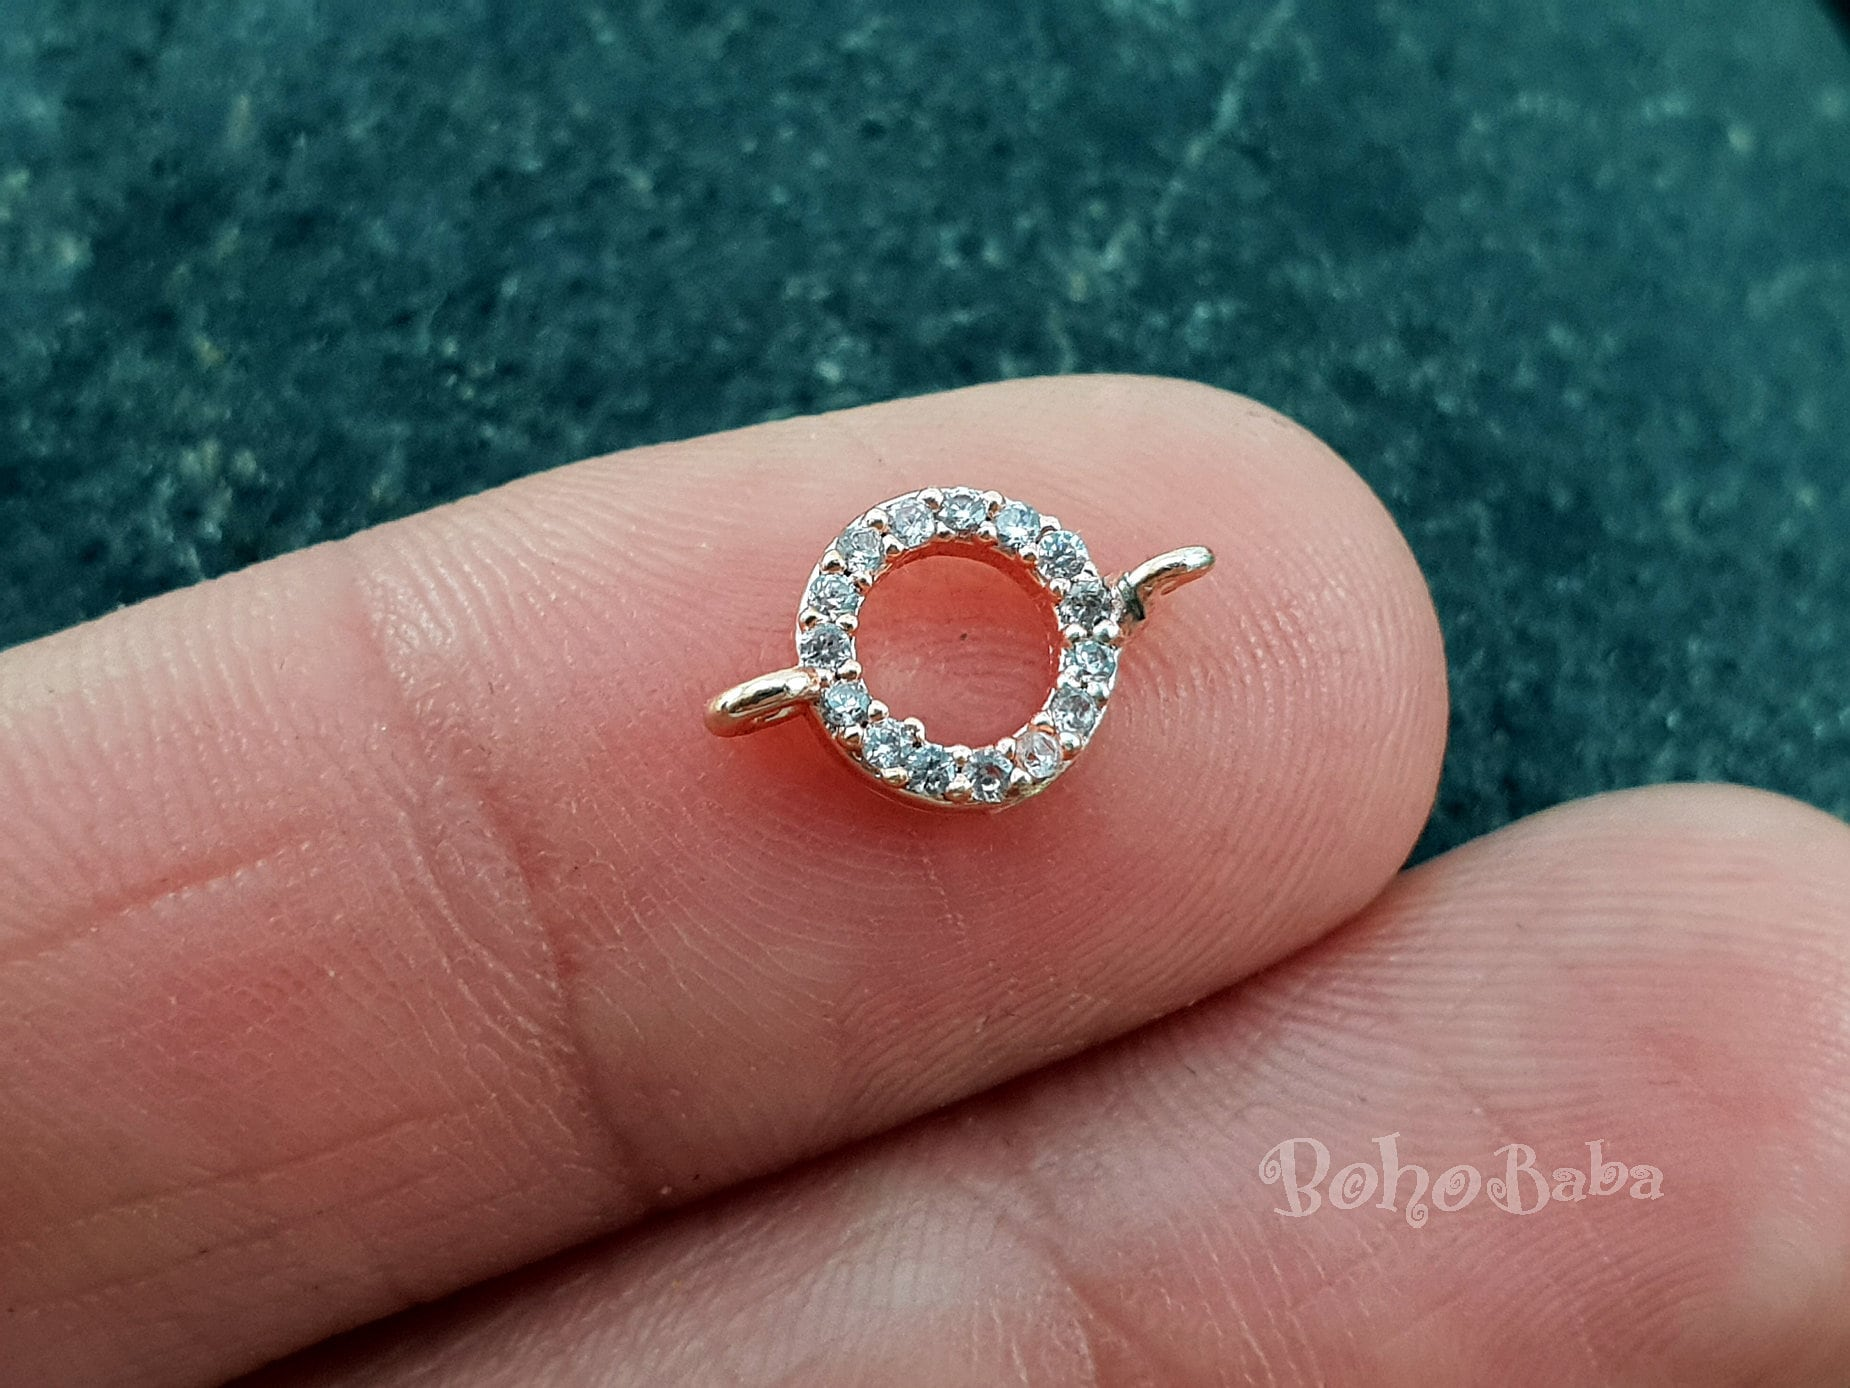 Tiny Hoop Pave Charms Dainty Bracelet Micro Pave Charms   Etsy